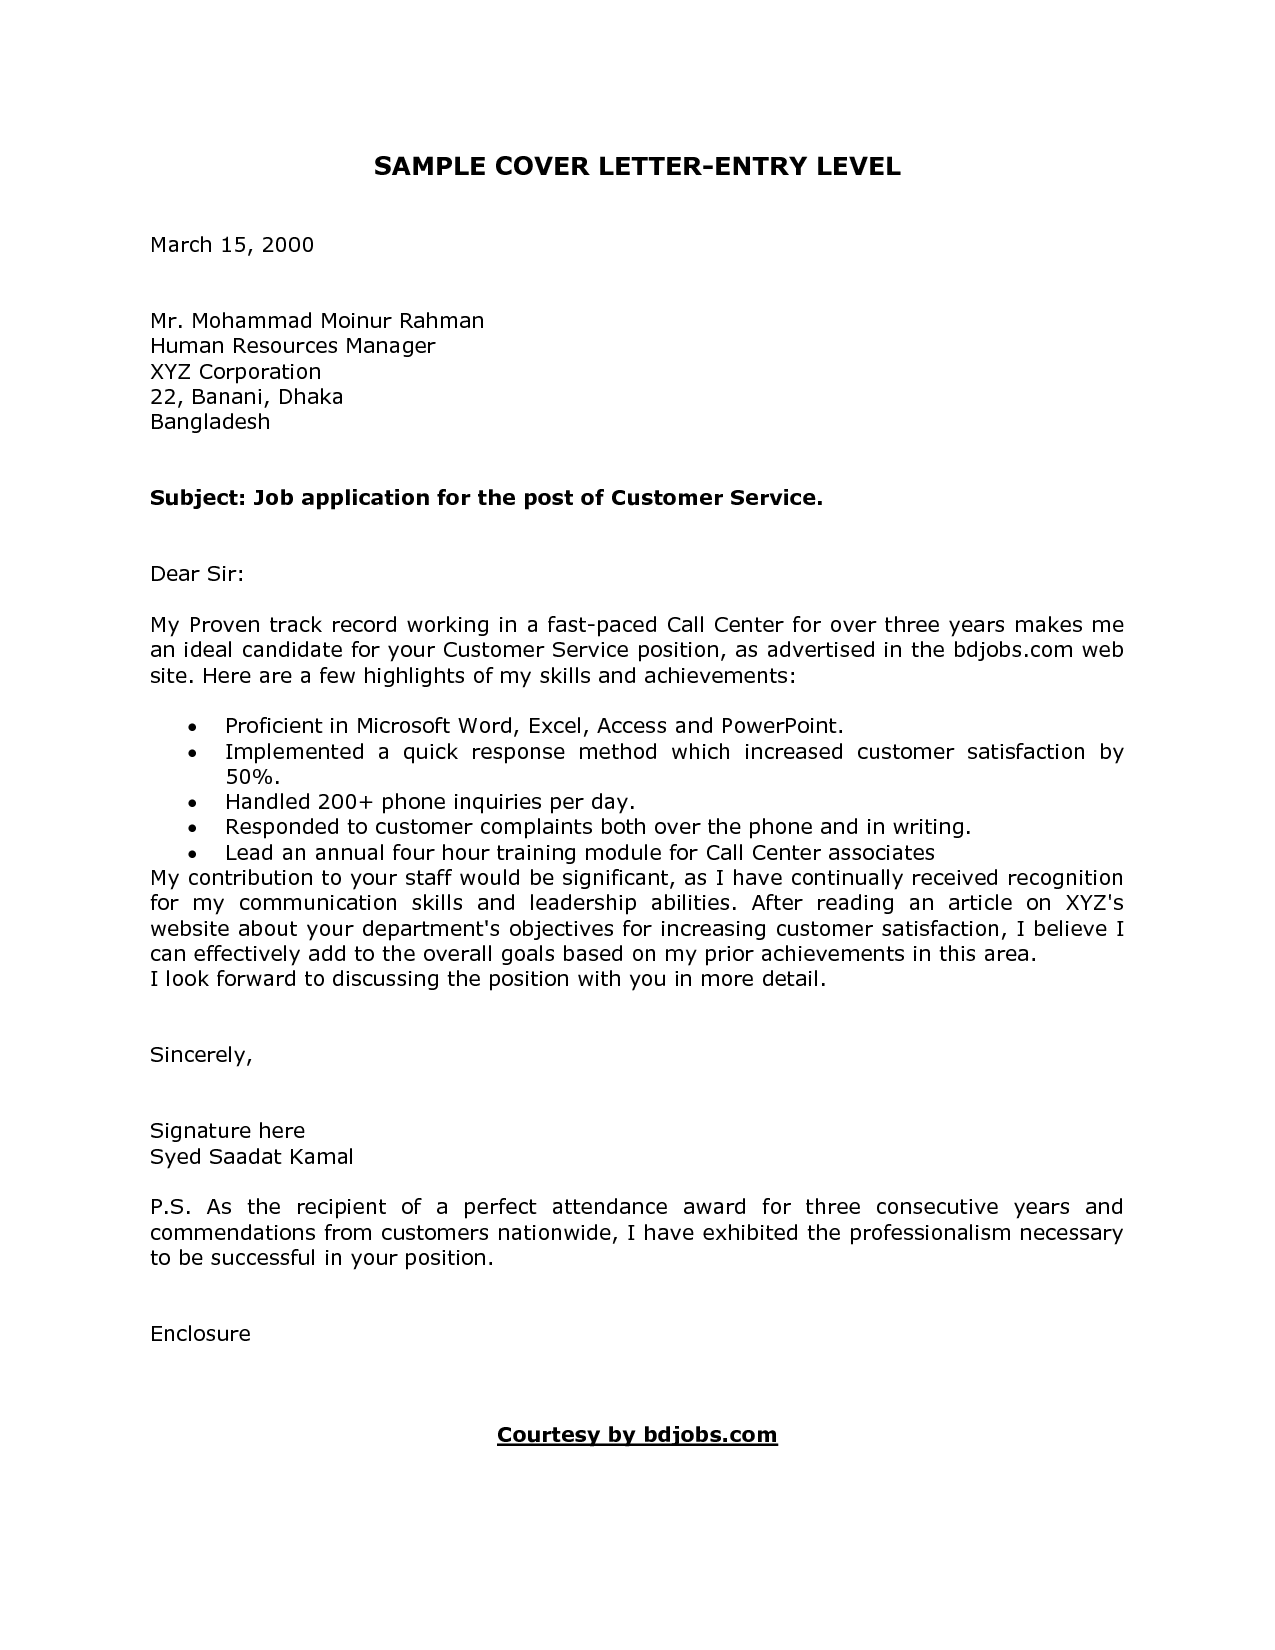 Cover letter format creating executive samples example good for cover letter format creating executive samples example good for job application the best madrichimfo Image collections